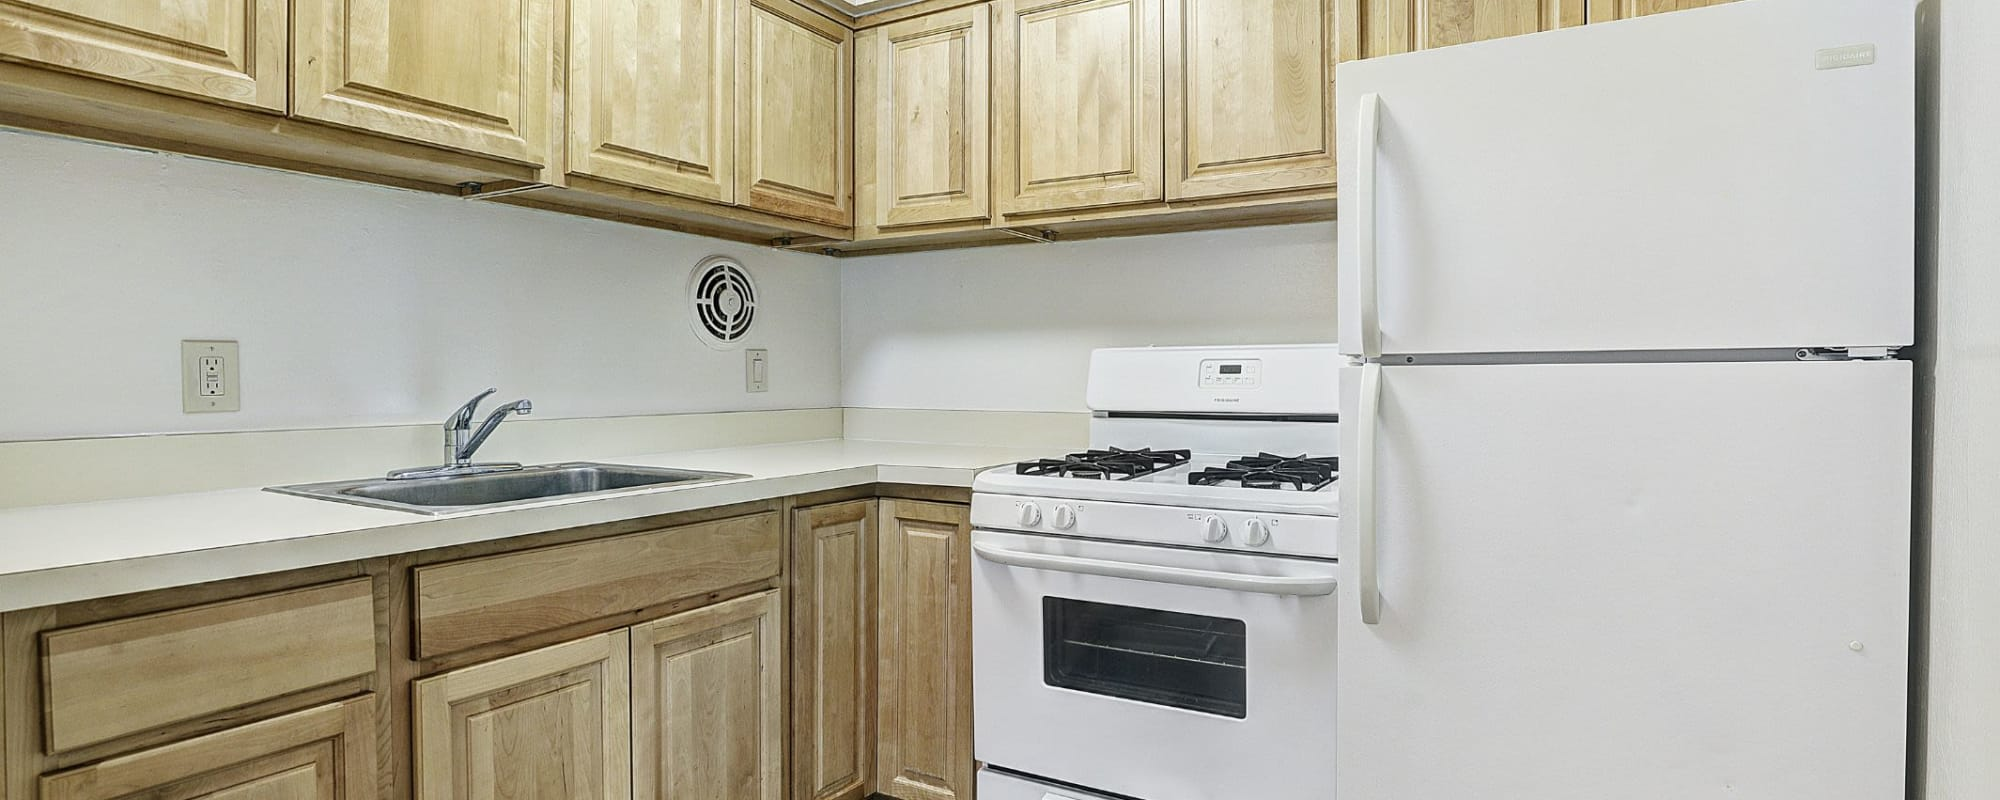 Amenities at Garret Village Apartments in Clifton, New Jersey